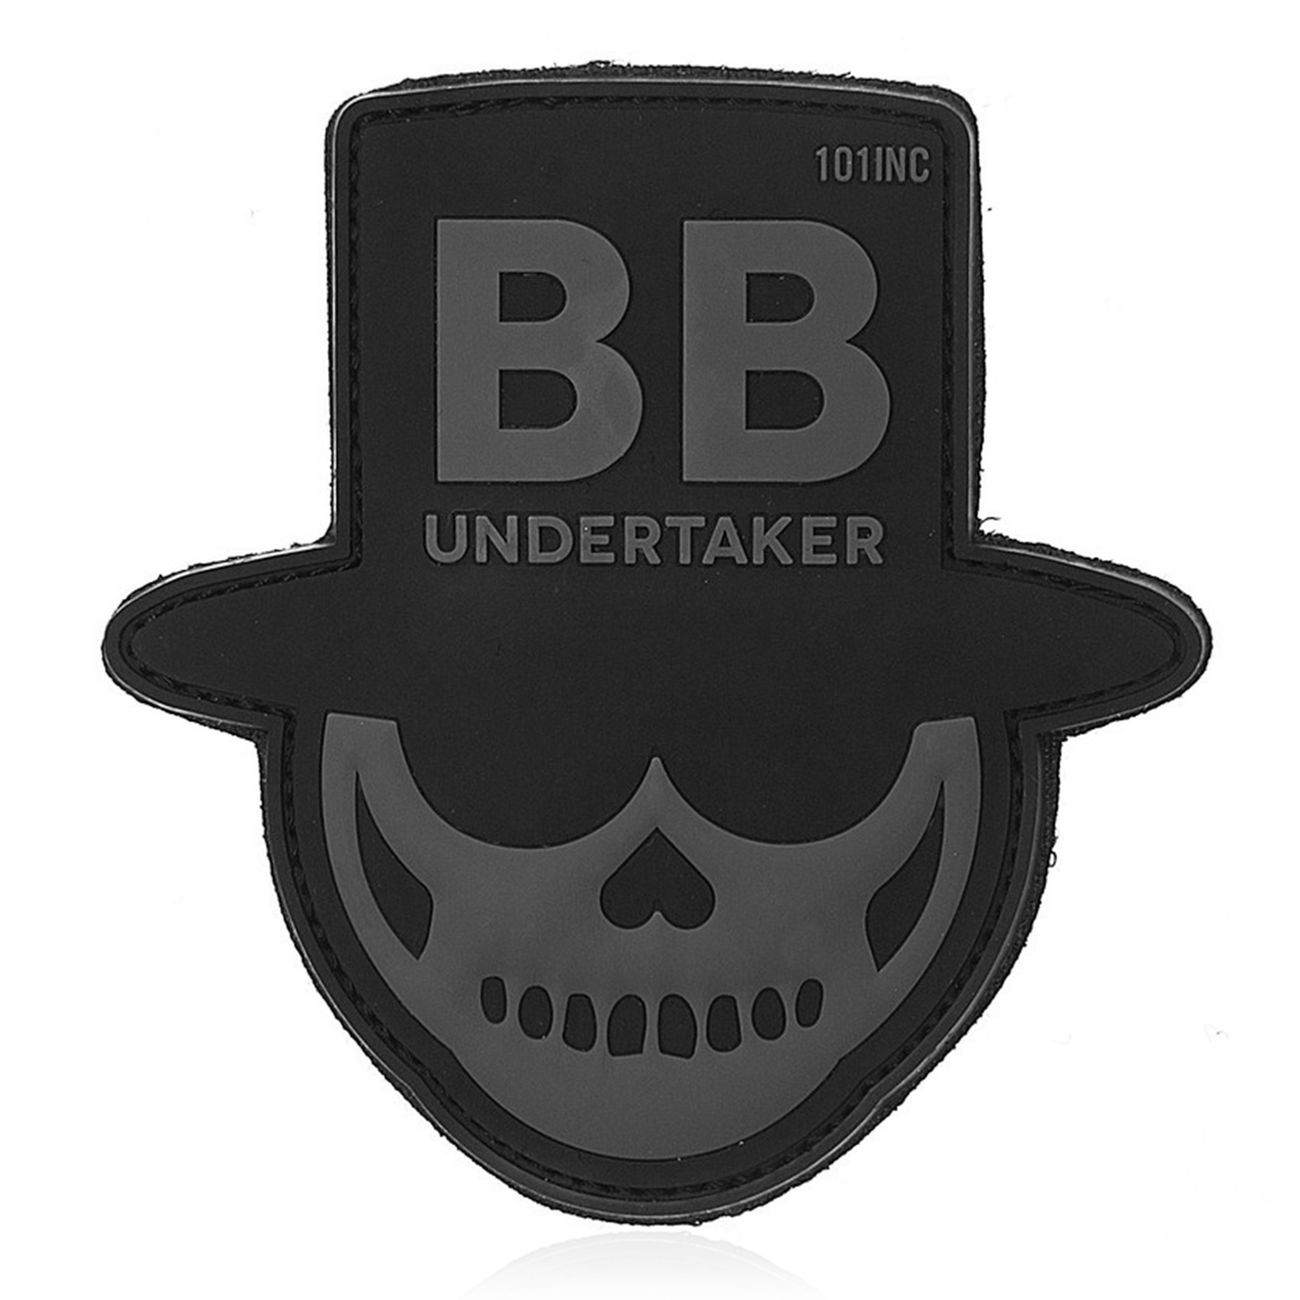 101 INC. 3D Rubber Patch BB Undertaker swat 0